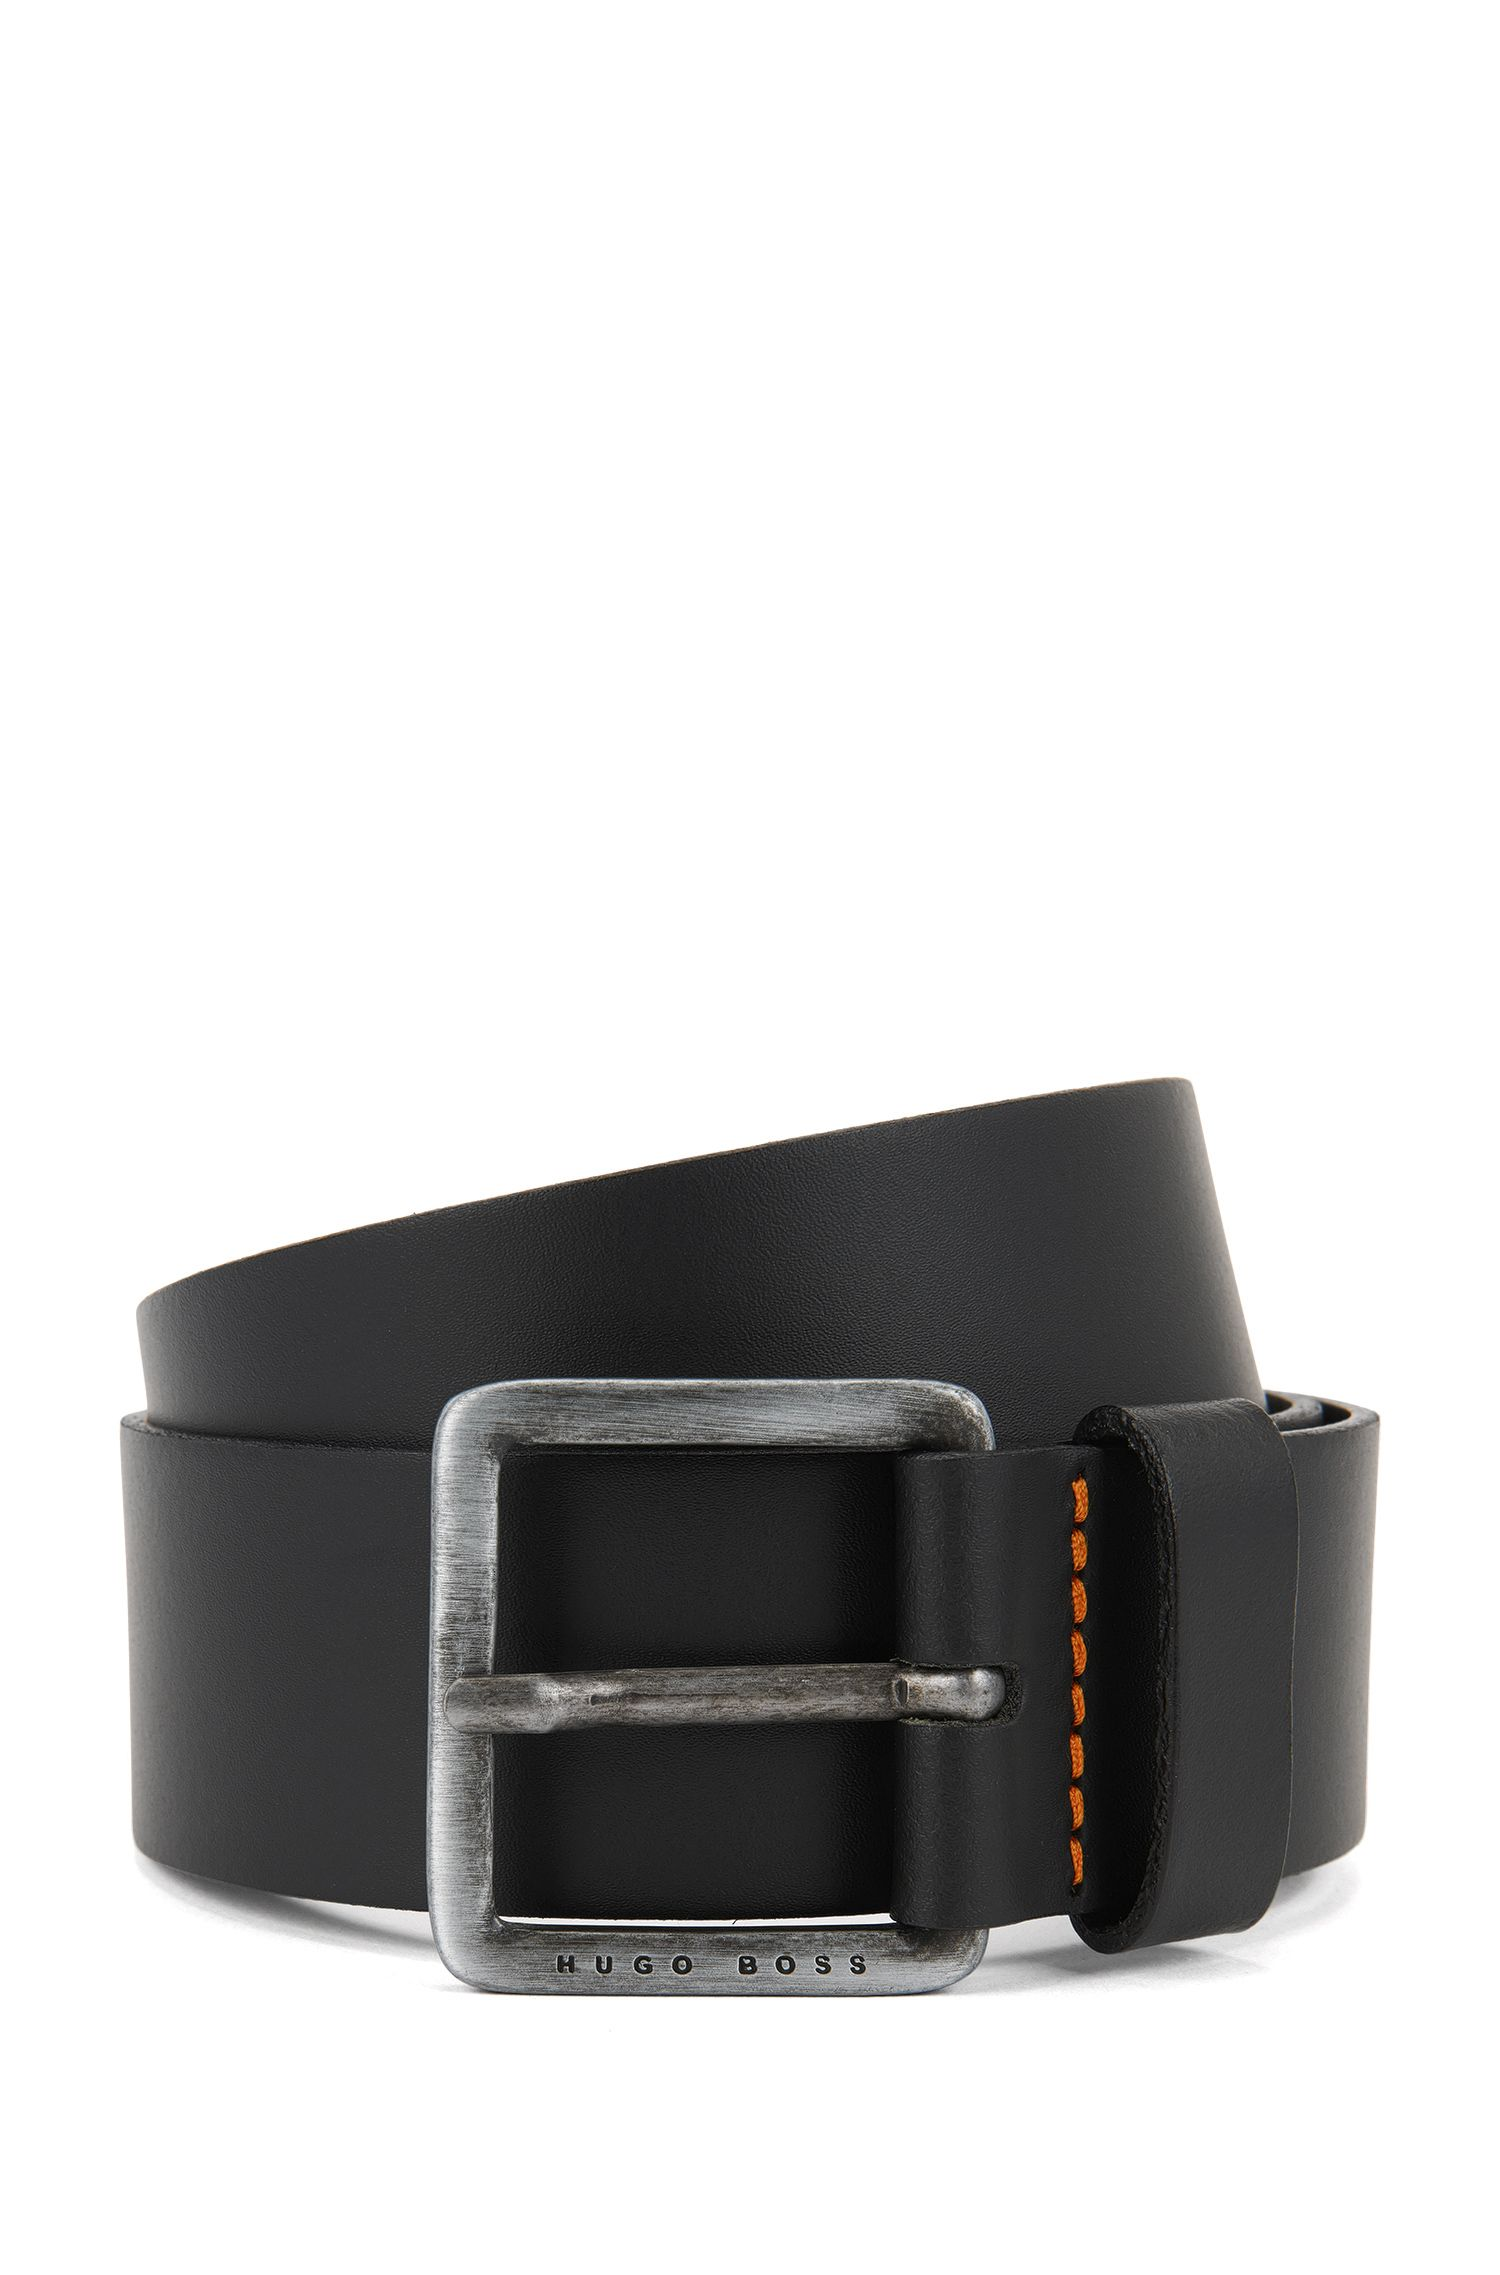 Leather belt with signature stitching